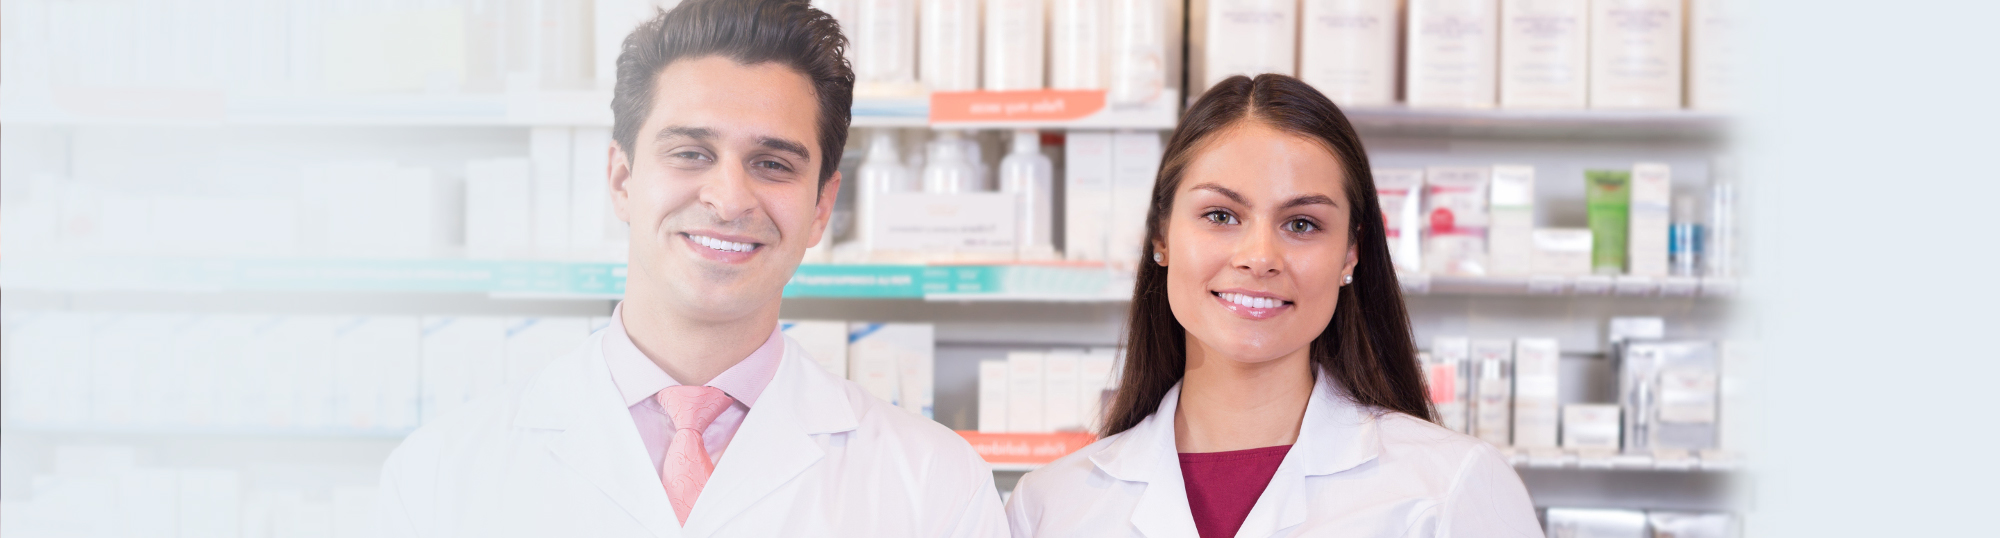 Two Smiling Pharmacists